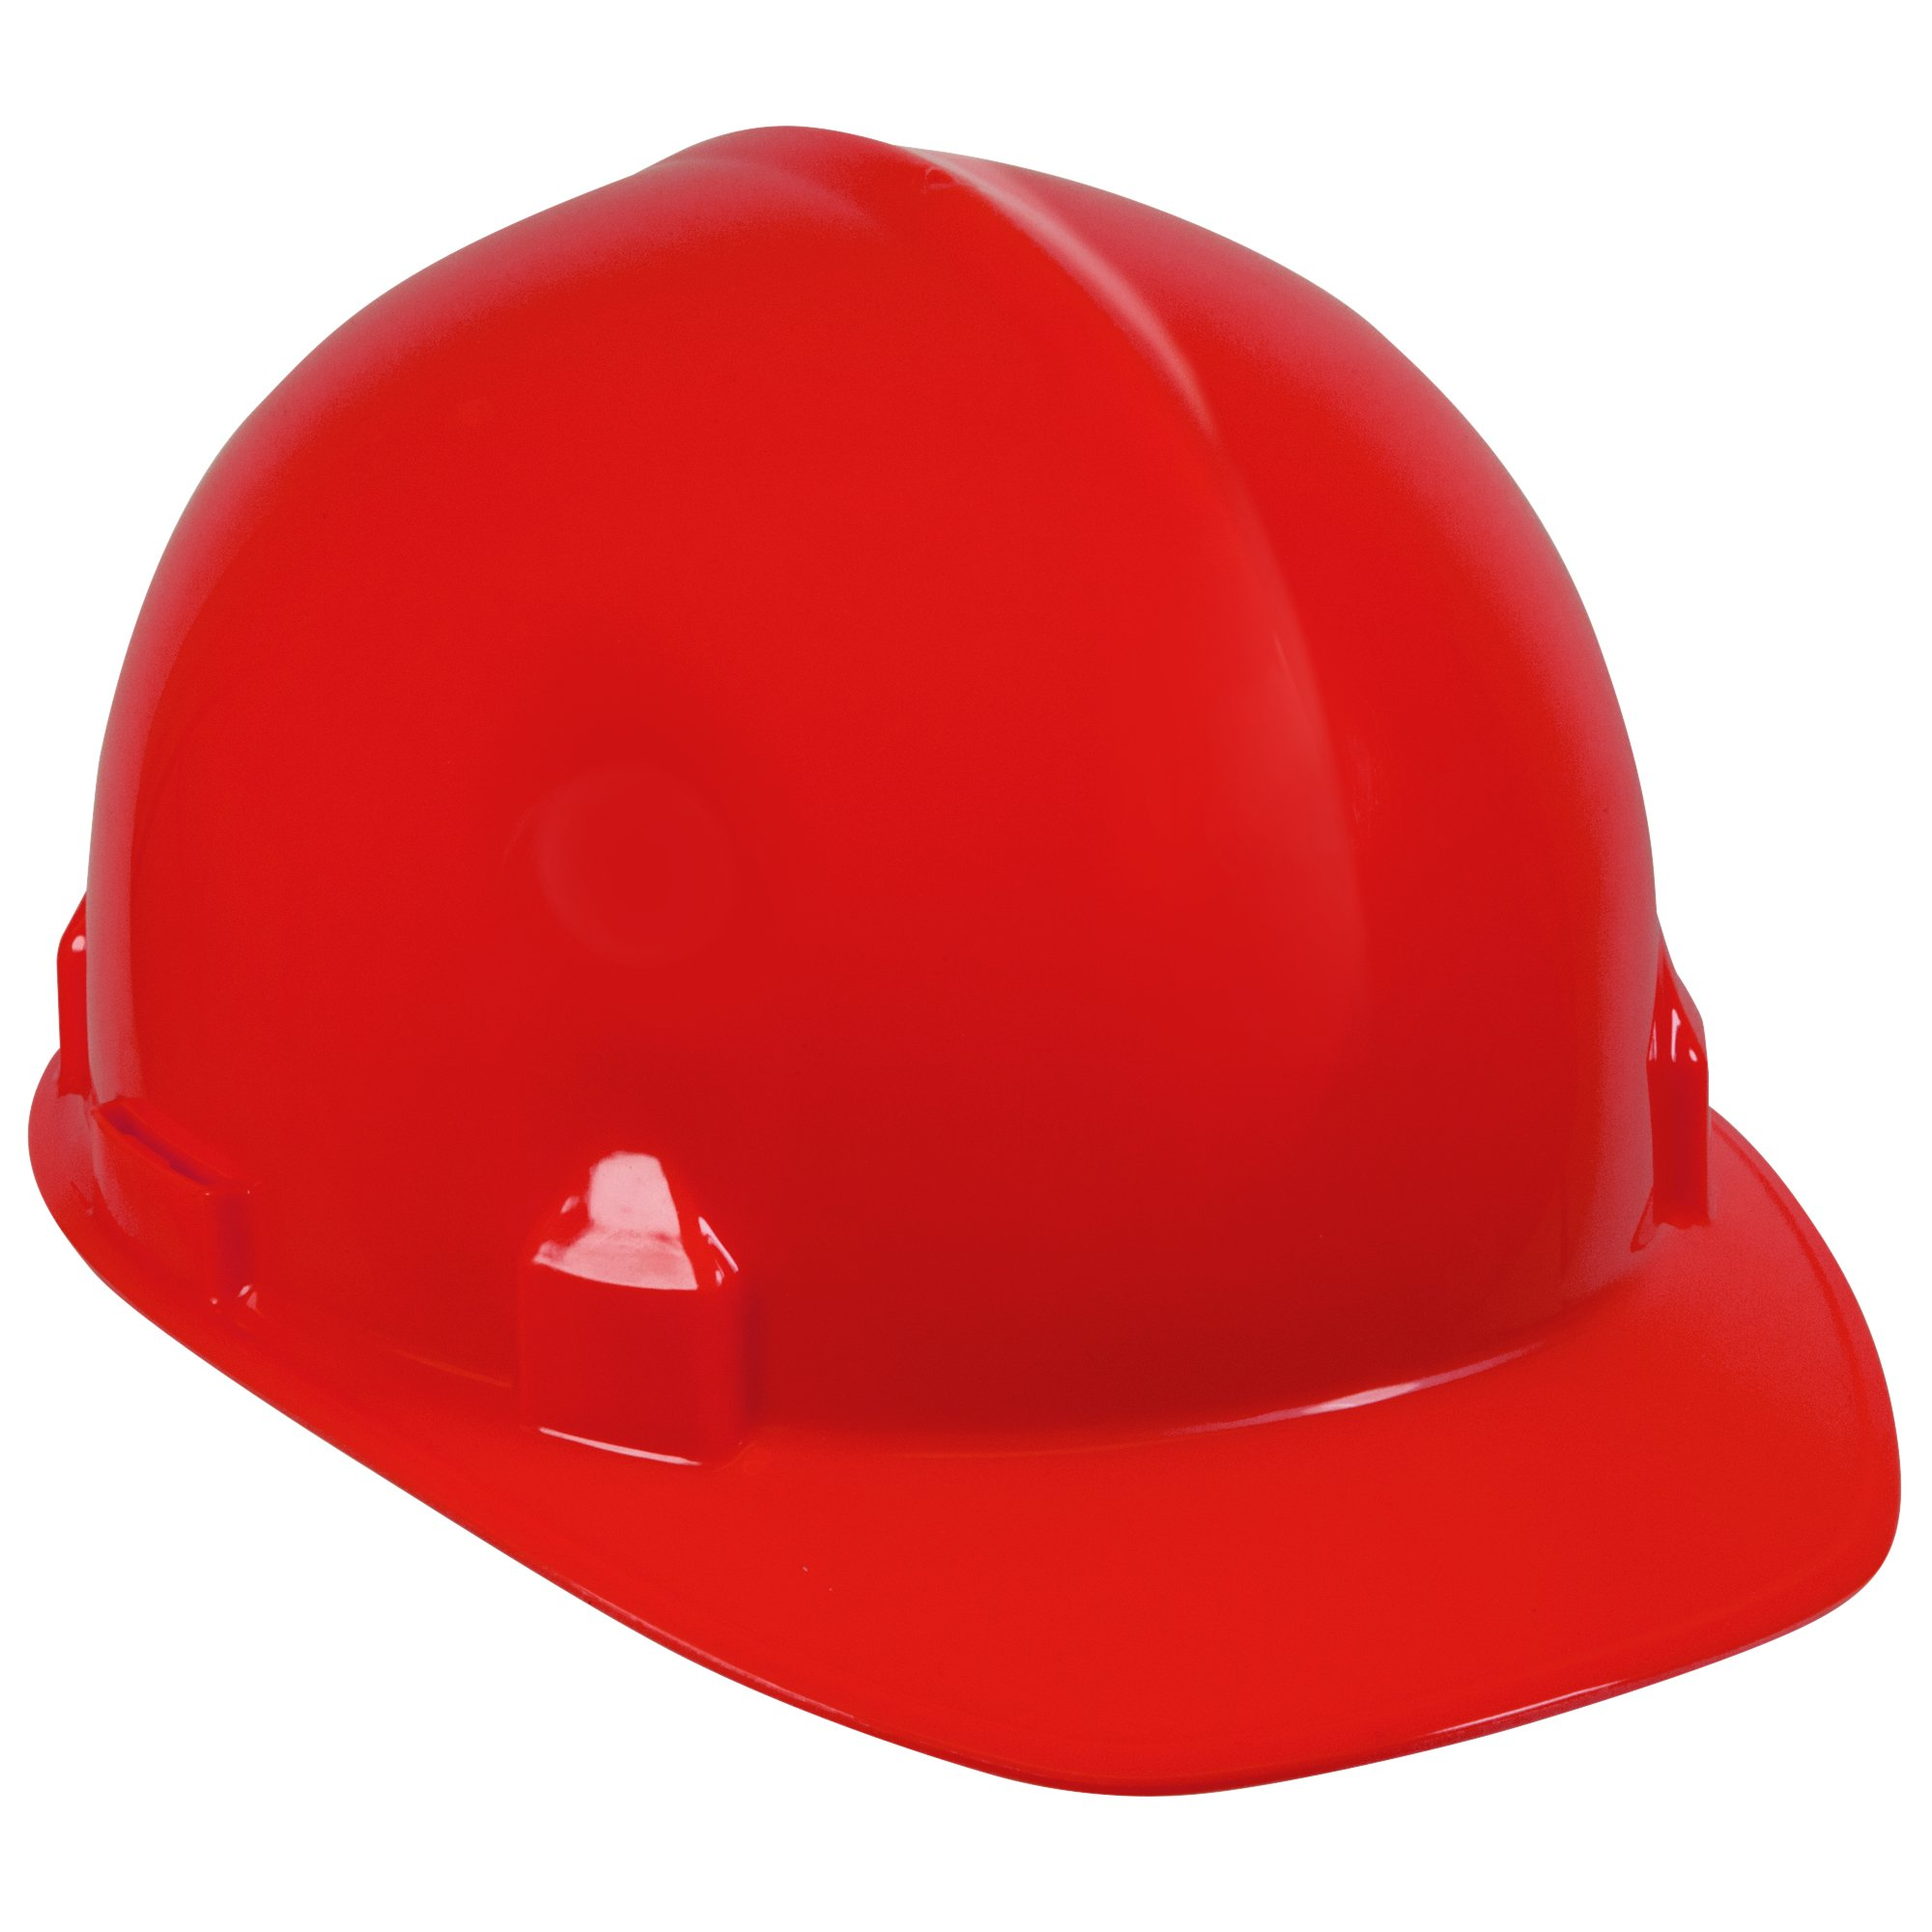 Jackson Safety SC-6 Hard Hat (14841), 4-Point Ratchet Suspension, Smooth Dome, Meets ANSI, Red, 12 / Case